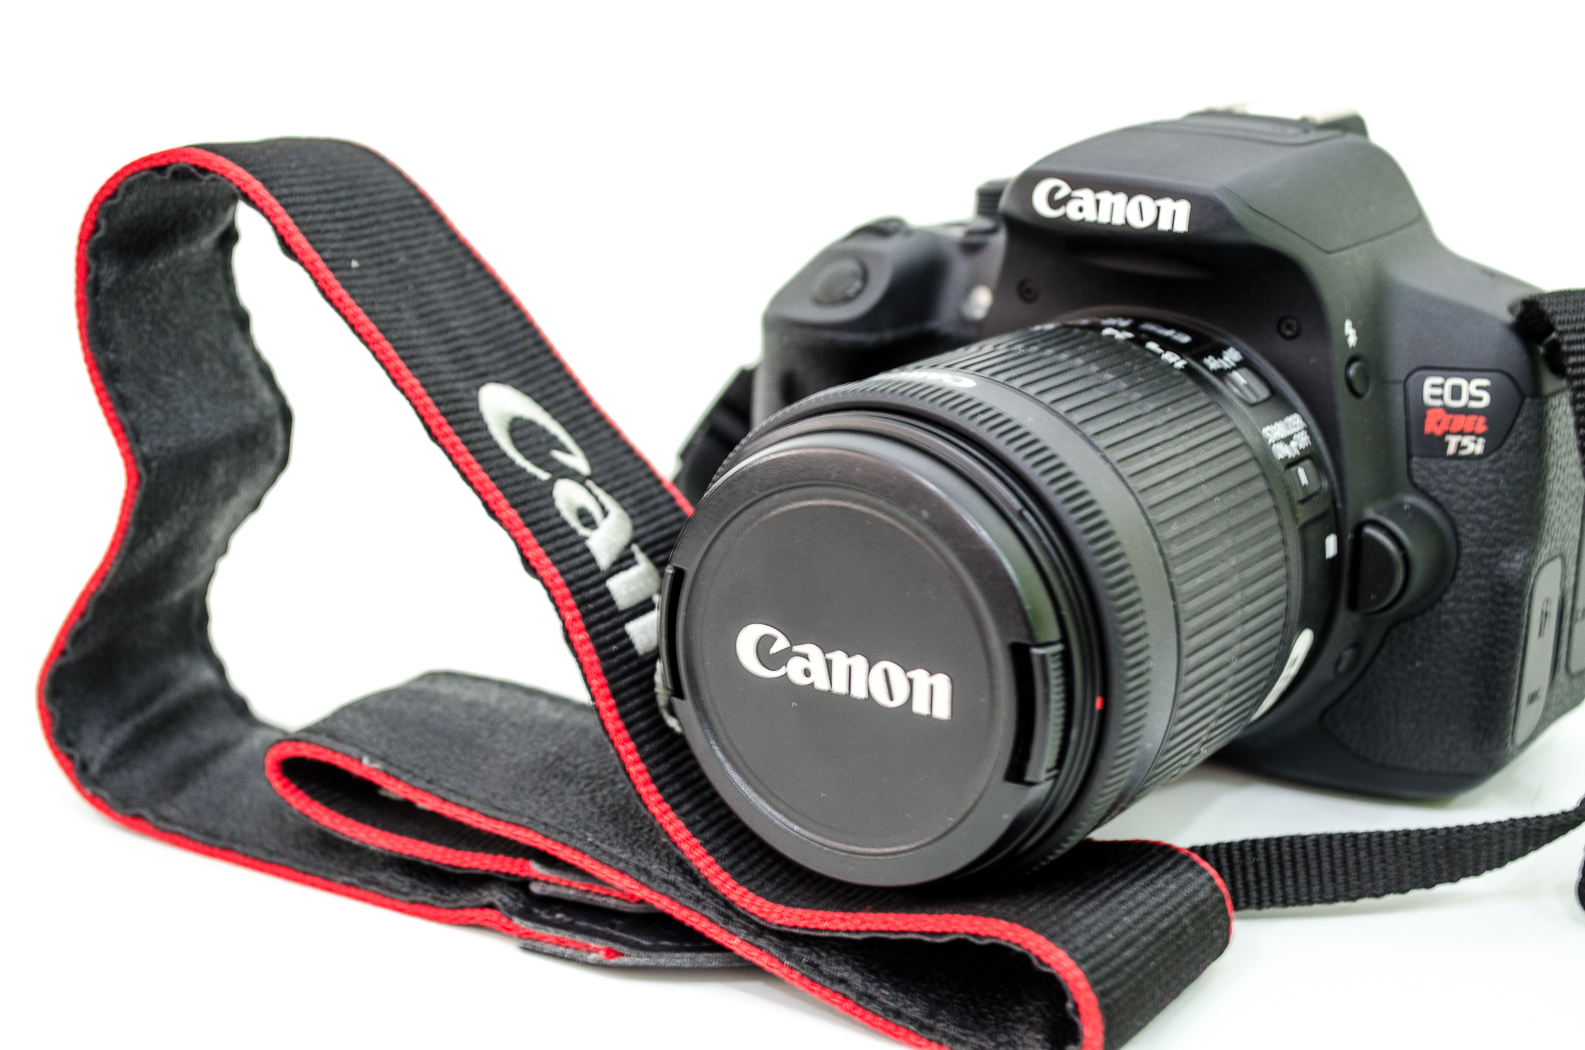 Awesome Canon Eos Rebel Entry Level Dslr Camera Canon T5 Vs T5i Price Canon Rebel T5 Vs T5i Vs Sl1 dpreview Canon T5 Vs T5i